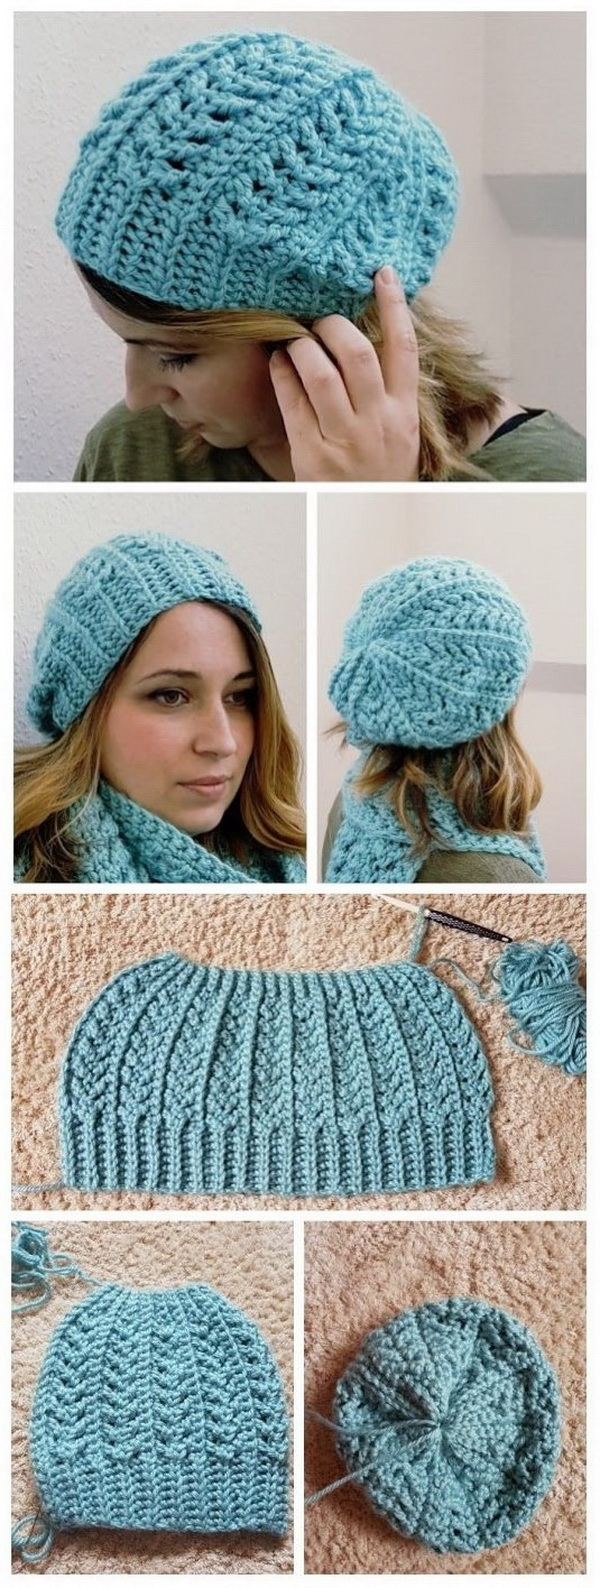 Crochet Flow Hat. Crochet hat makes an ideal first project for beginners.  By learning just a few basic stitches, you can create a beautiful hat that'll keep your head warm and cozy. Love how this crochet flow hat turn out!